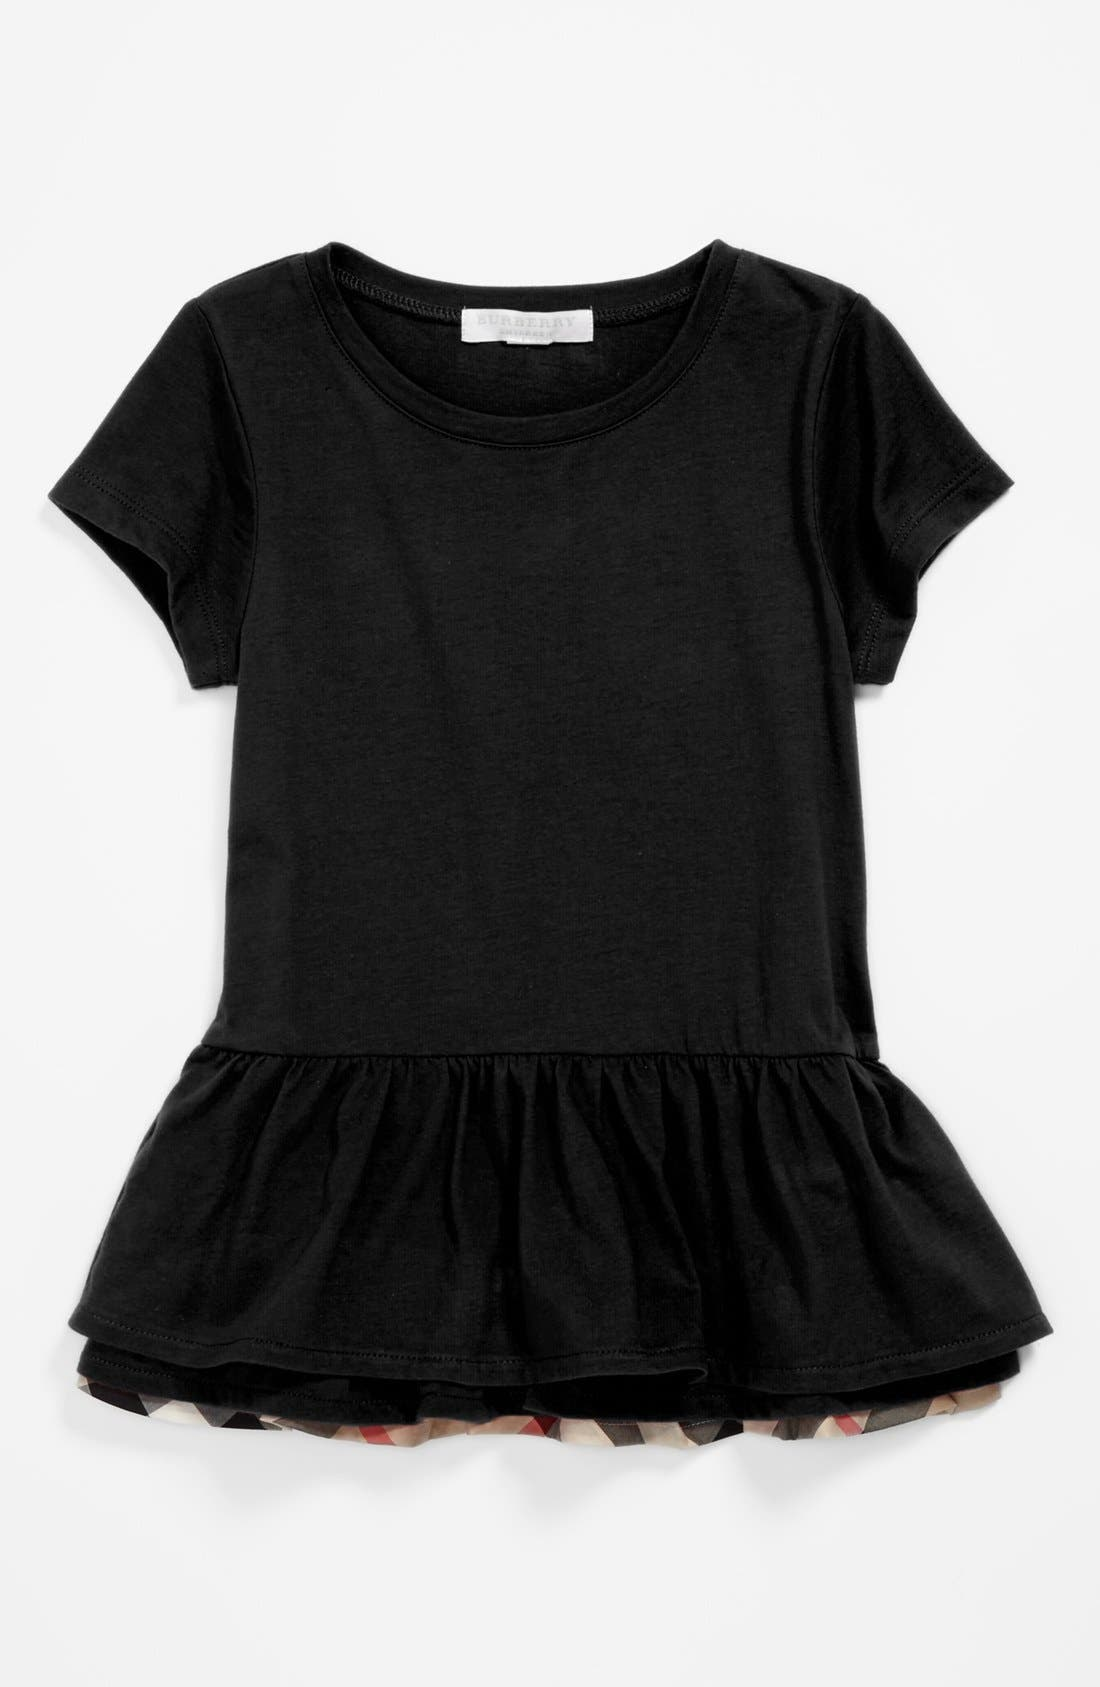 Alternate Image 1 Selected - Burberry 'Tyna' Tiered Ruffle Hem Top (Toddler Girls, Little Girls & Big Girls)